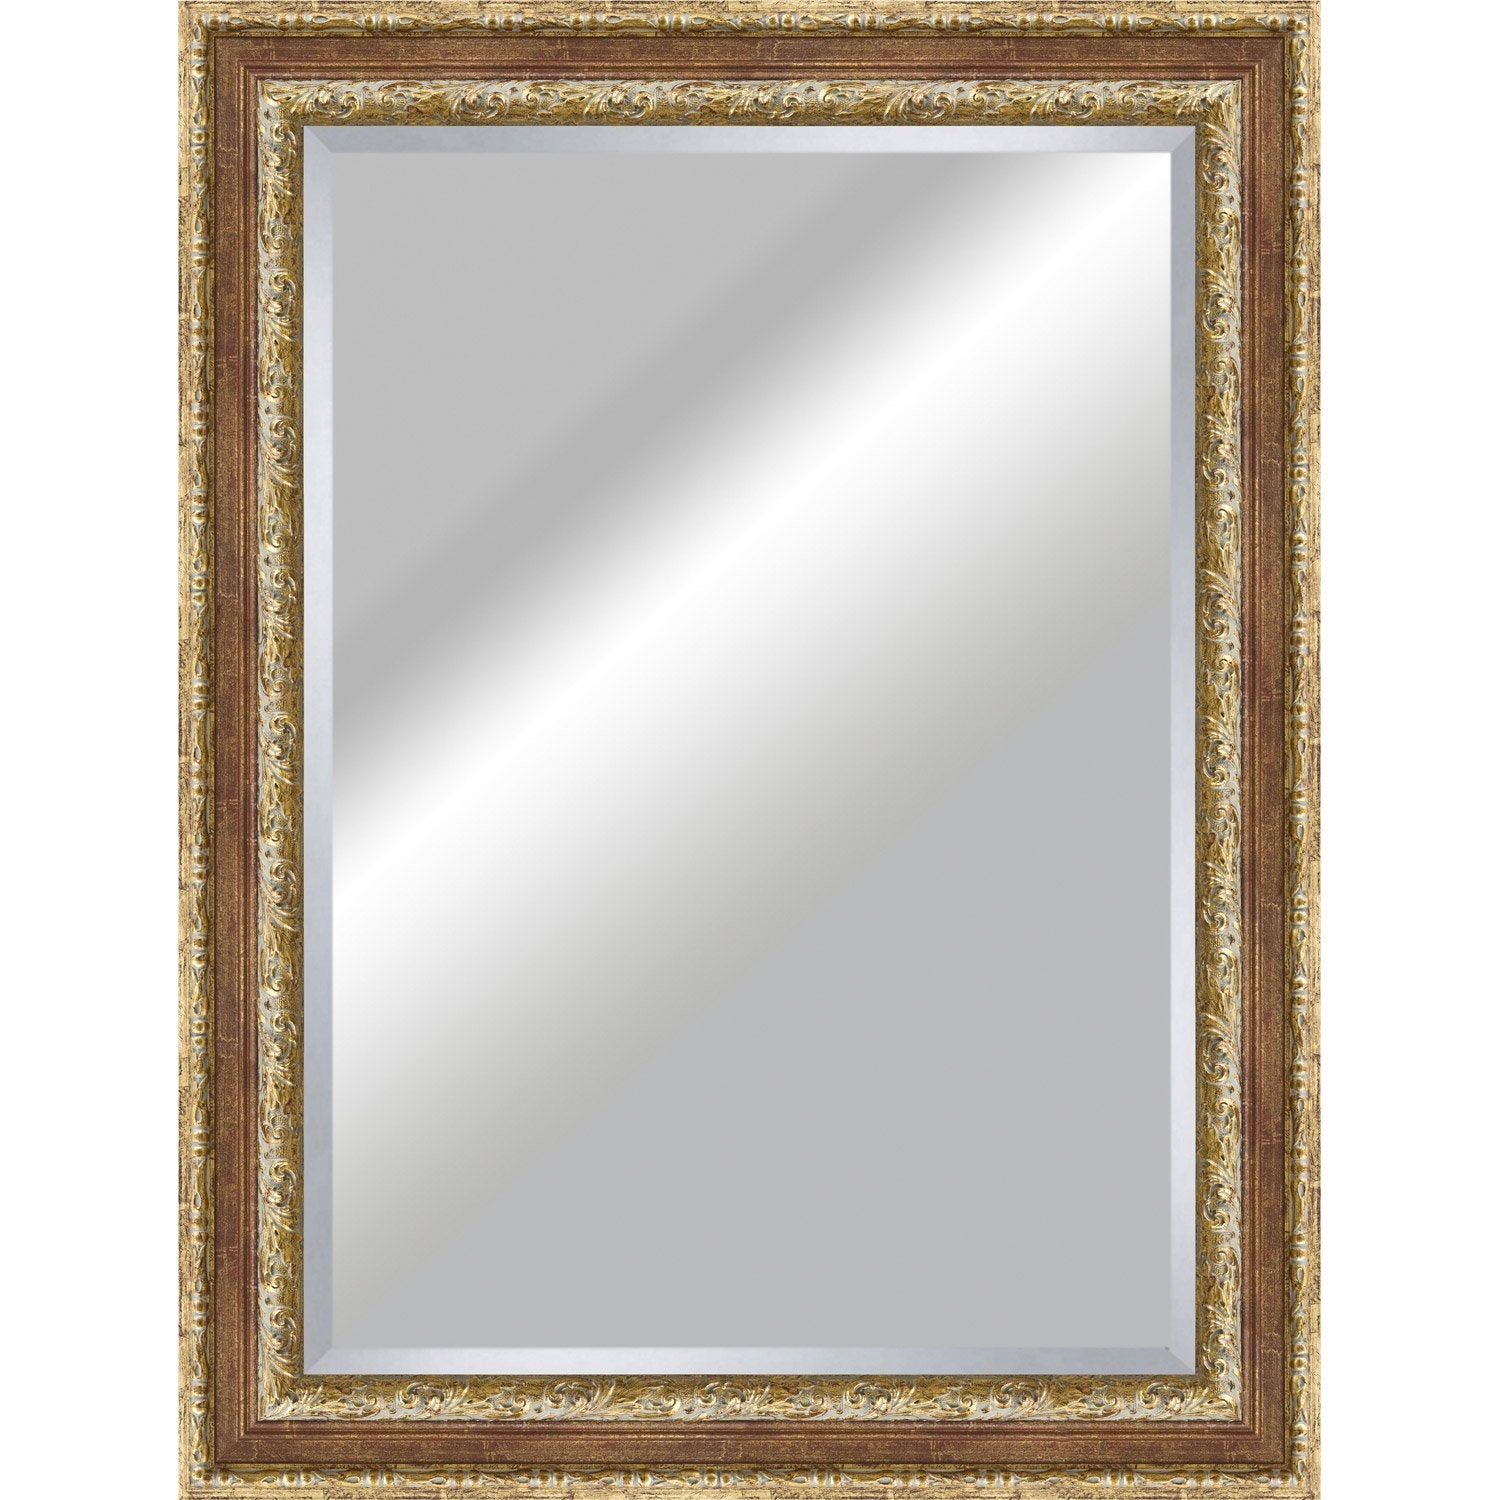 Miroir 50 X 70 Leroy Merlin Of Miroir Tradition Rouge 50x70 Cm Leroy Merlin